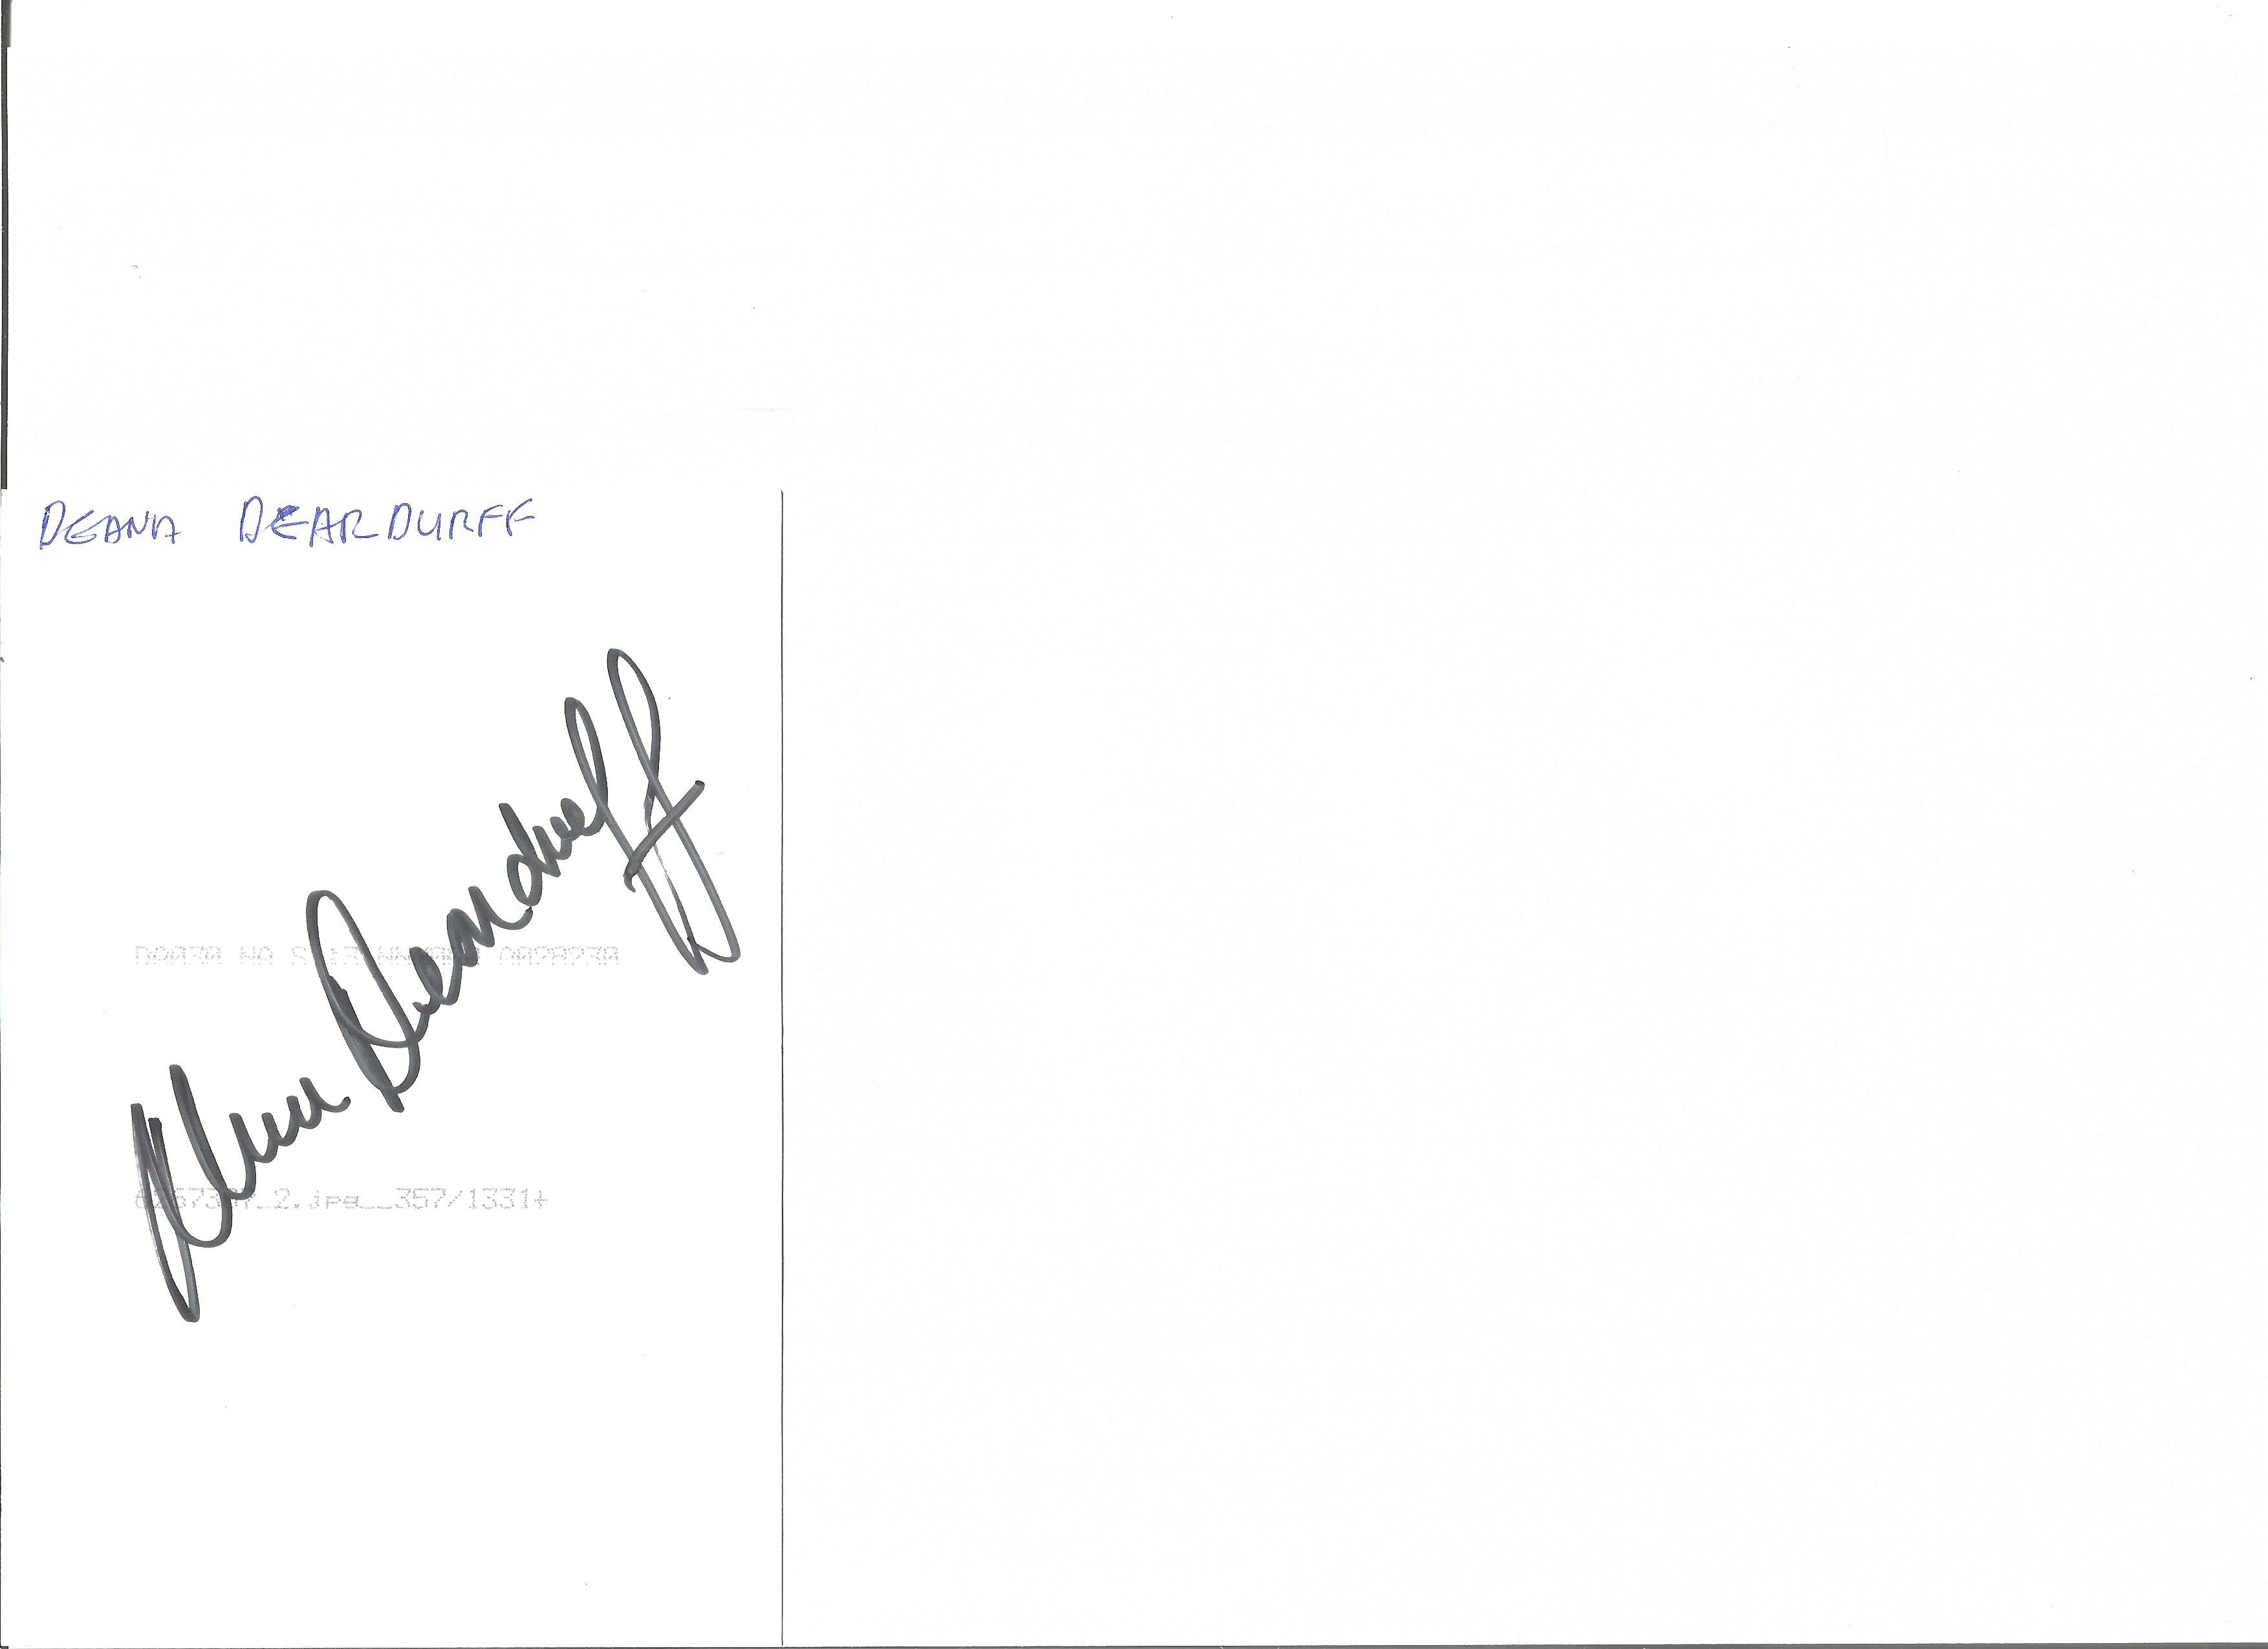 Lot 655 - Olympics Deana Deardurff signed 6 x 4 inch colour photo of the Olympic gold medallist in the